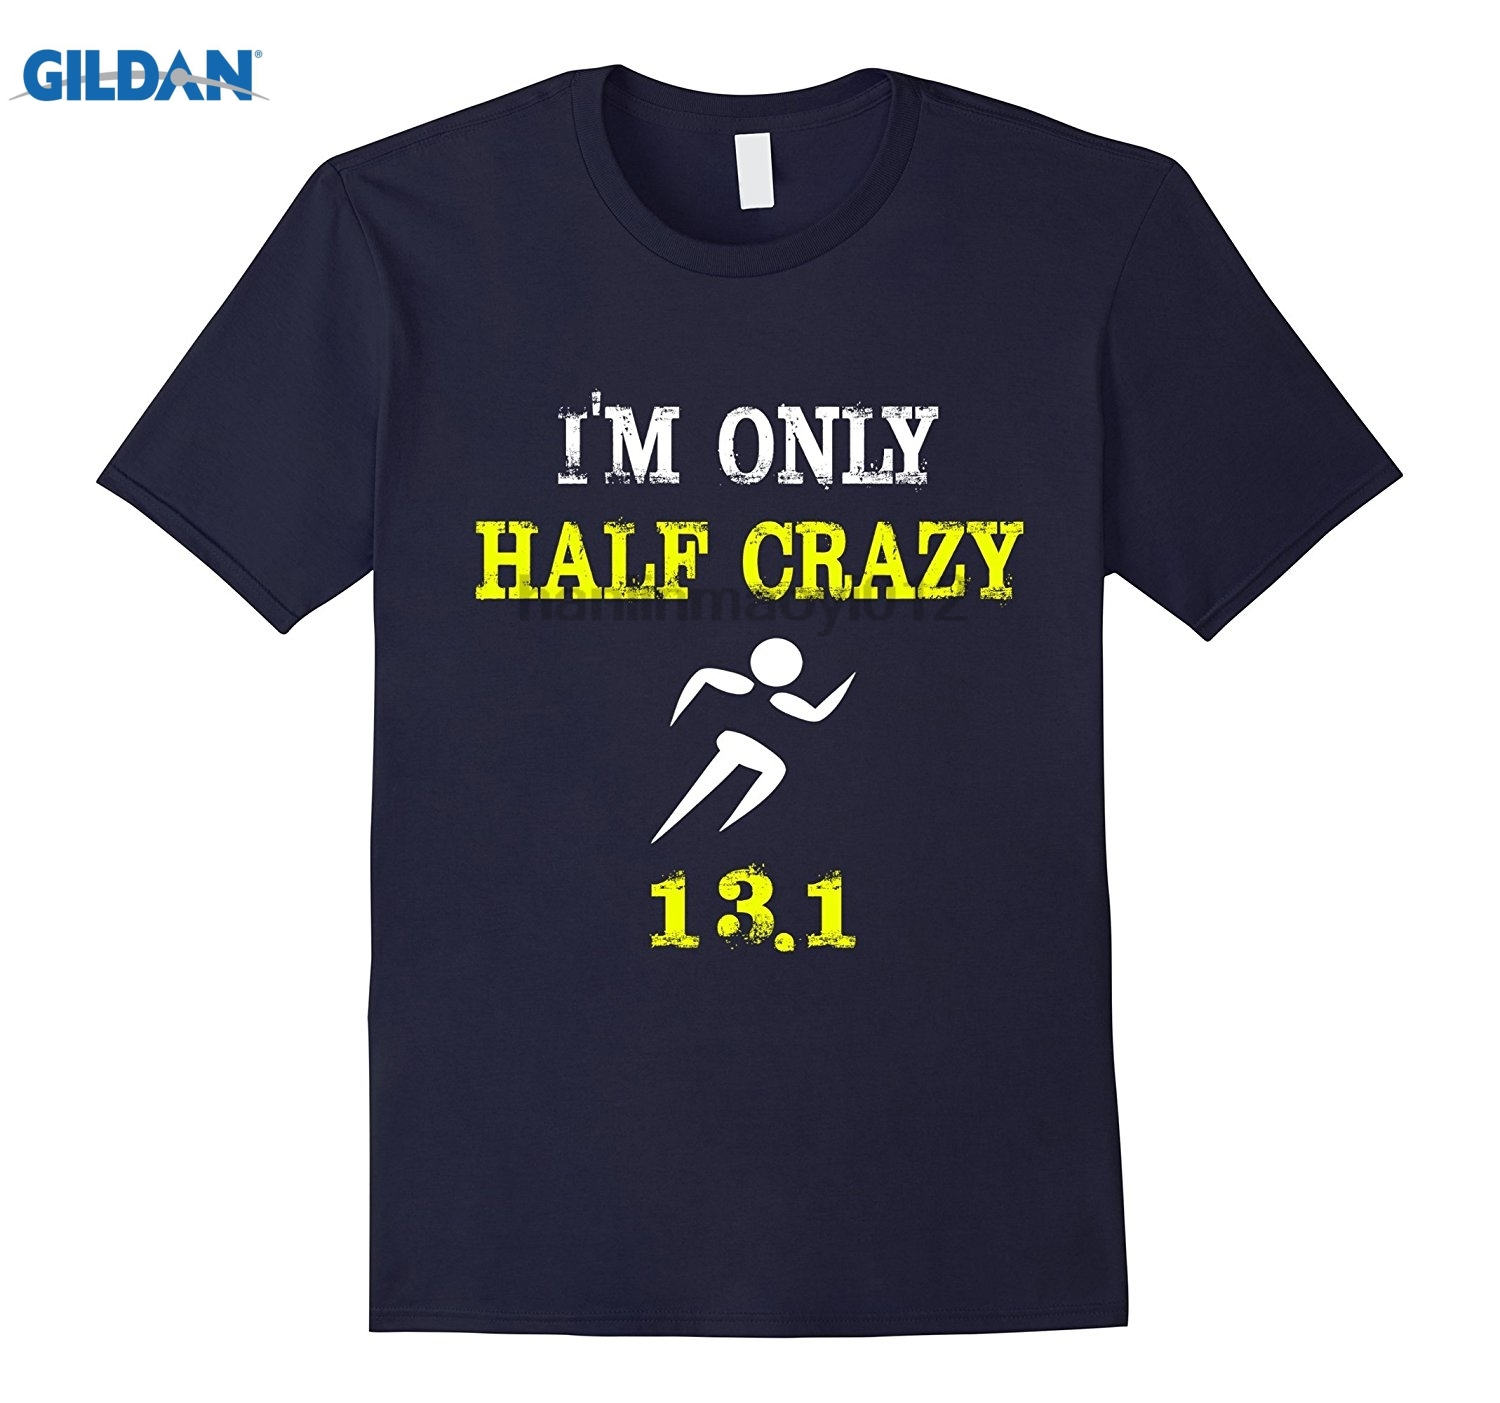 GILDAN Funny Shirt - Half Runner Womens T-shirt